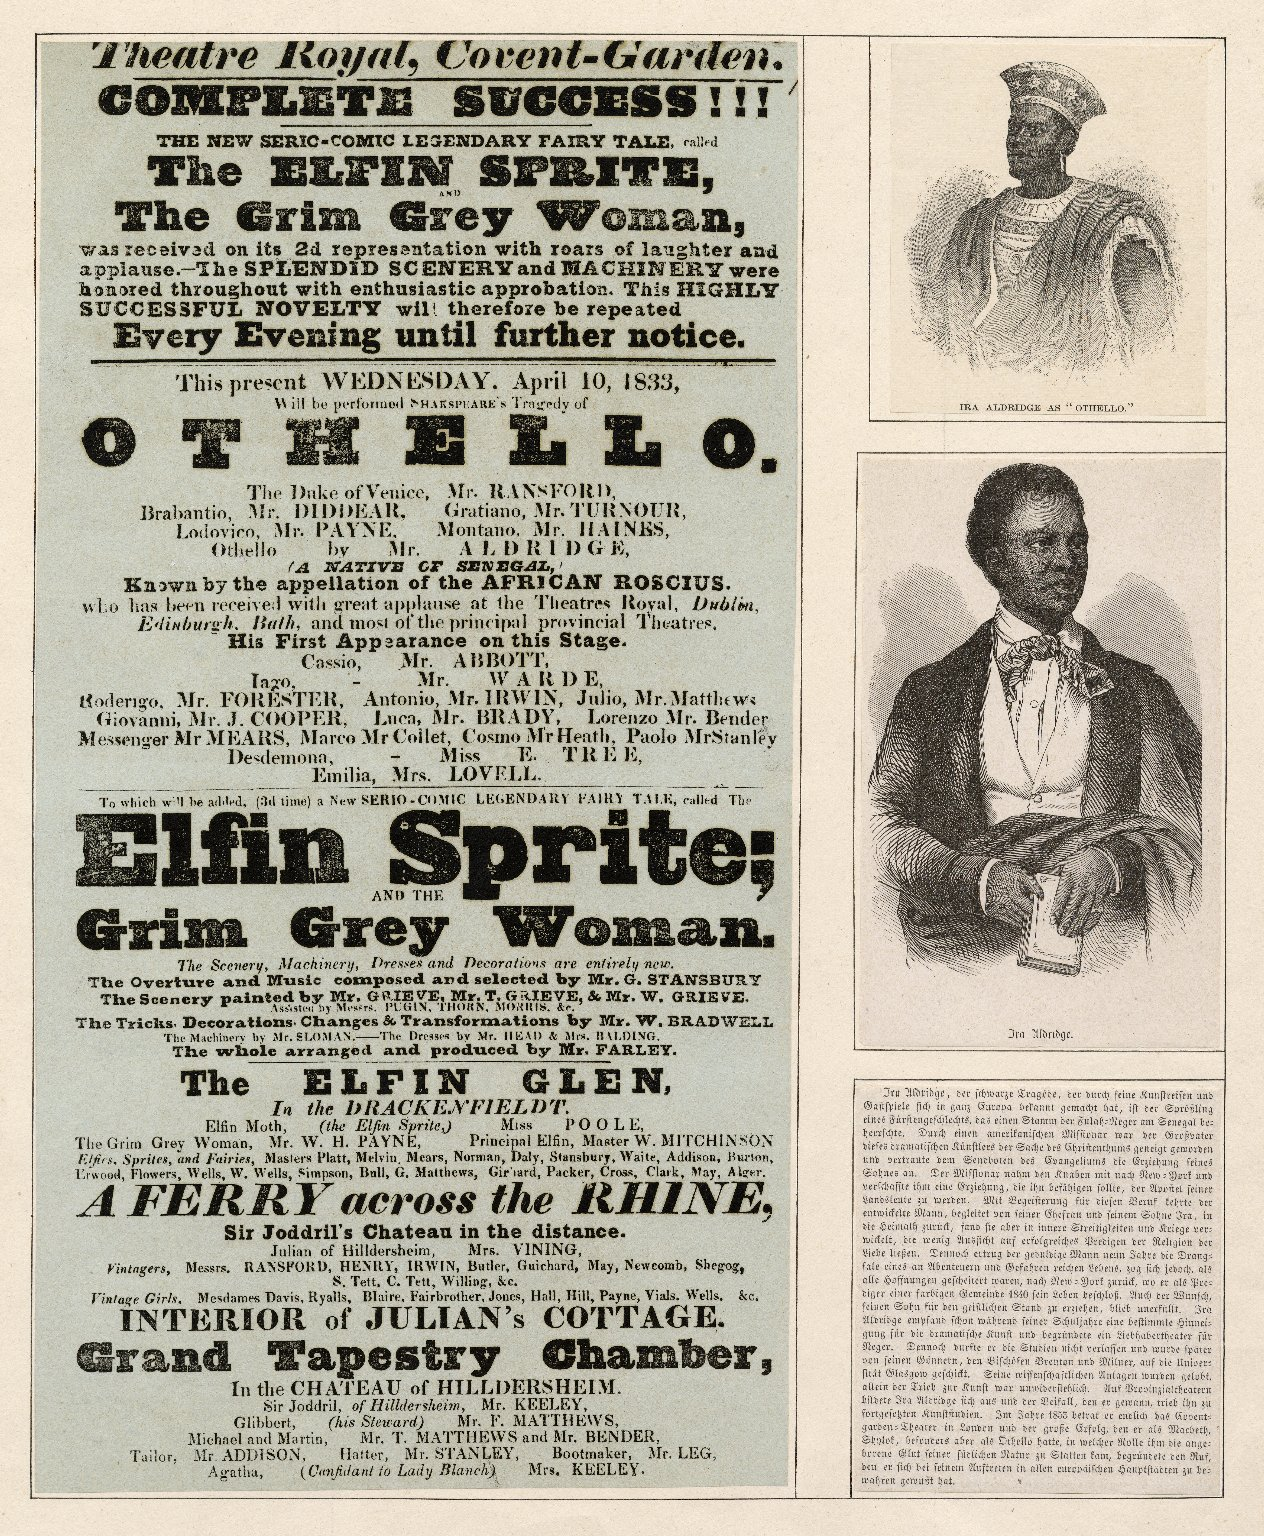 <b>Covent Garden playbill, 1833</b>     	</br>Left: Playbill for Aldridge&#39;s first performance at Covent Garden on April 10, 1833; Top: Aldridge as Othello, Frankfurt, 1852. Lithograph by S. Buhler; Middle: Aldridge. Lithograph by Barabas, 1853. (M&amp;S, 56-7); Bottom: Newspaper article about Aldridge in German.</br><br/><b>Source: </b><i>[Ira Aldridge&#39;s first appearance at Covent Gardens in the role of Othello - a play bill dated 1833 plus 2 small engraved portraits and an article in German, mounted together] [graphic] (Call number: ART File A365.5 no.5), Folger Digital Image Collection, University of Cincinnati Libraries Digital Collections, University of Cincinnati, http://digproj.libraries.uc.edu:8180/luna/servlet/s/s4g1g9</i>